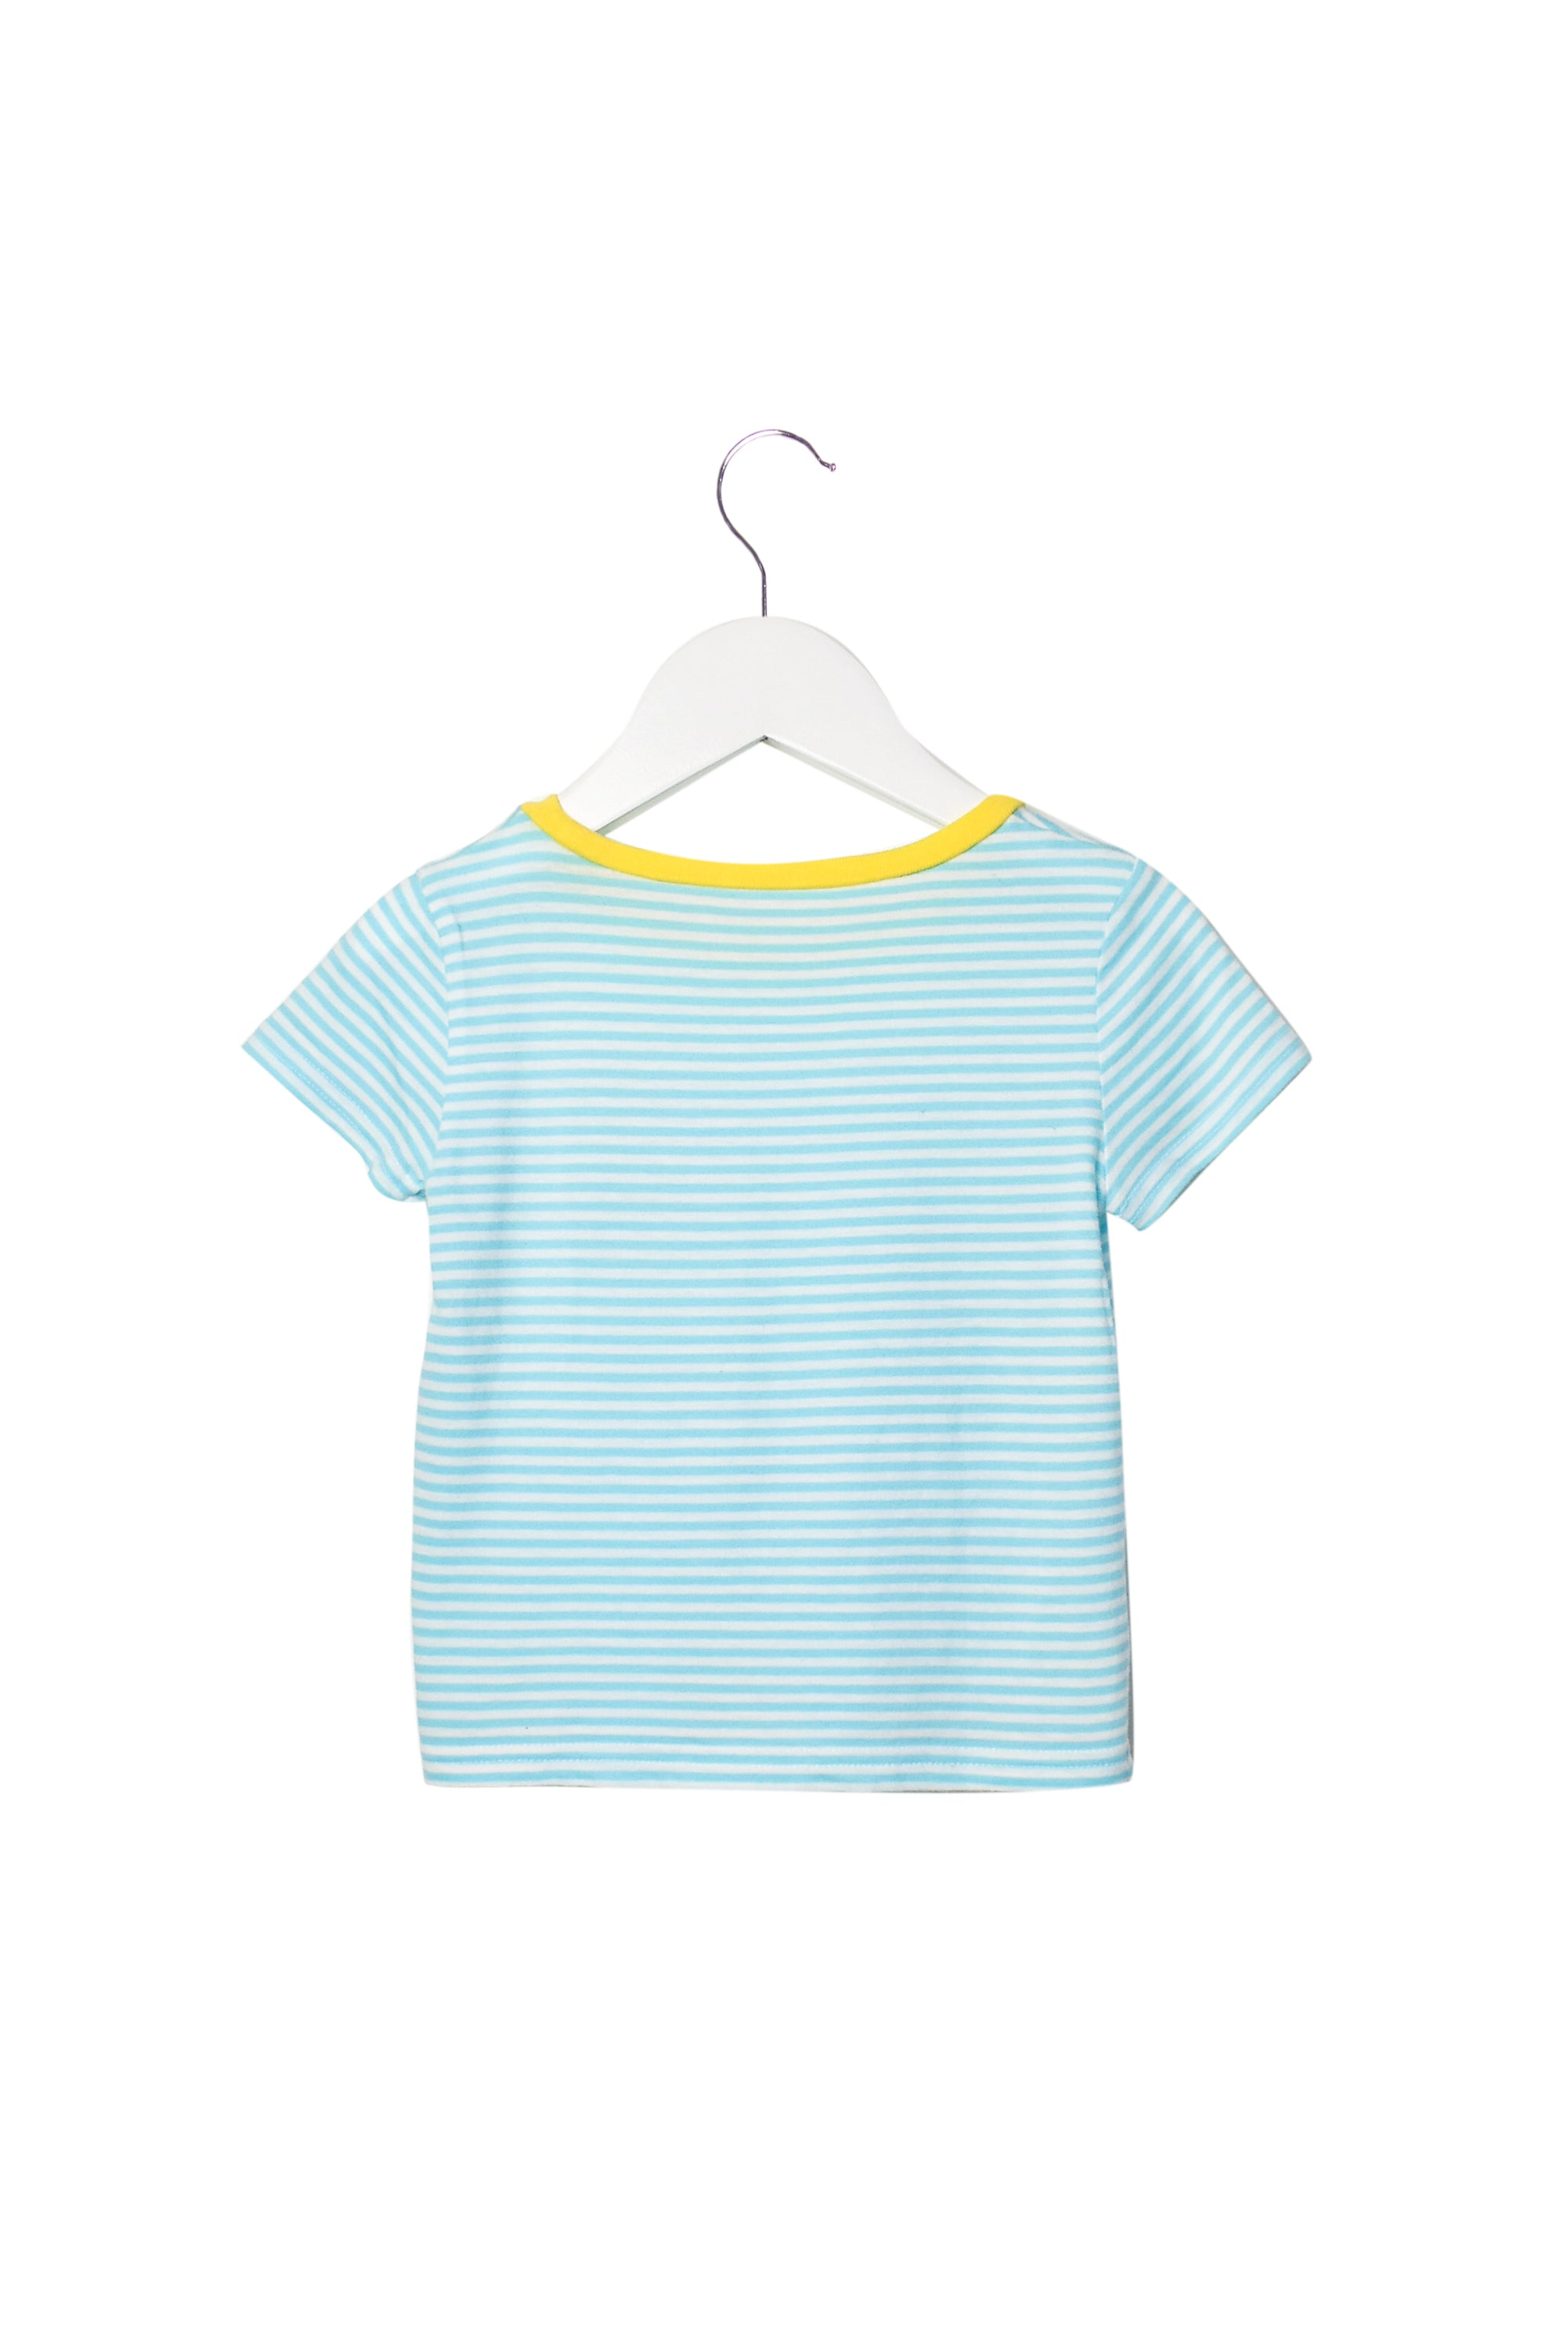 10006673 Polo Ralph Lauren Kids~T-Shirt 2T at Retykle